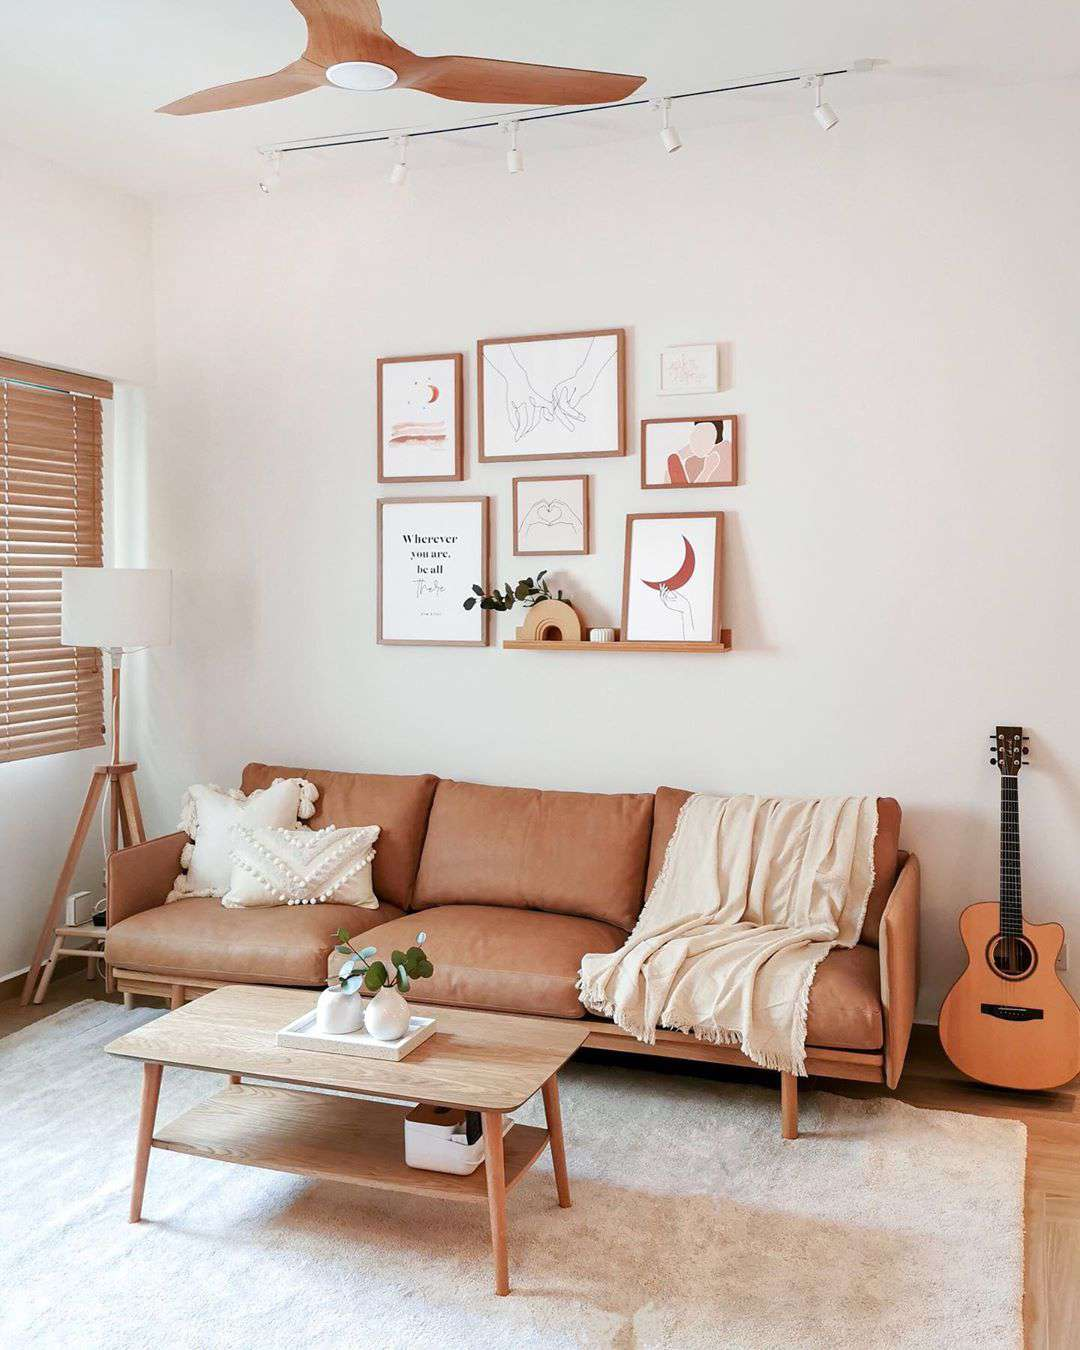 Soft pink living space with overhead lighting and corner lamp.